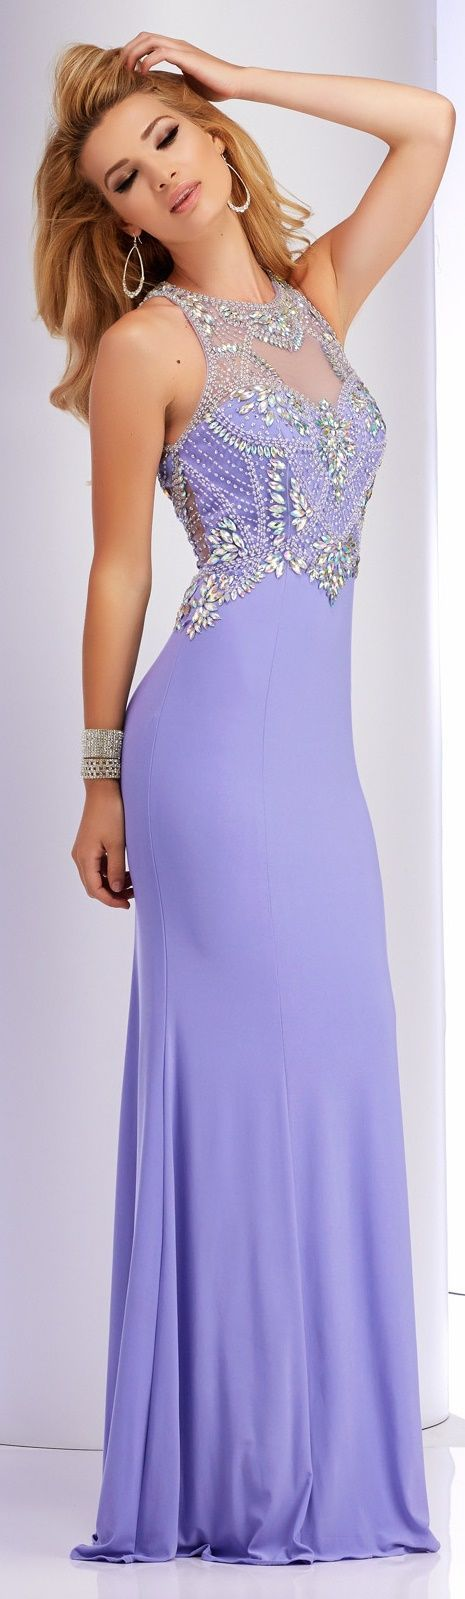 Clarisse Prom Dress 2796 | Pinterest | Lilacs, Prom and Bodice